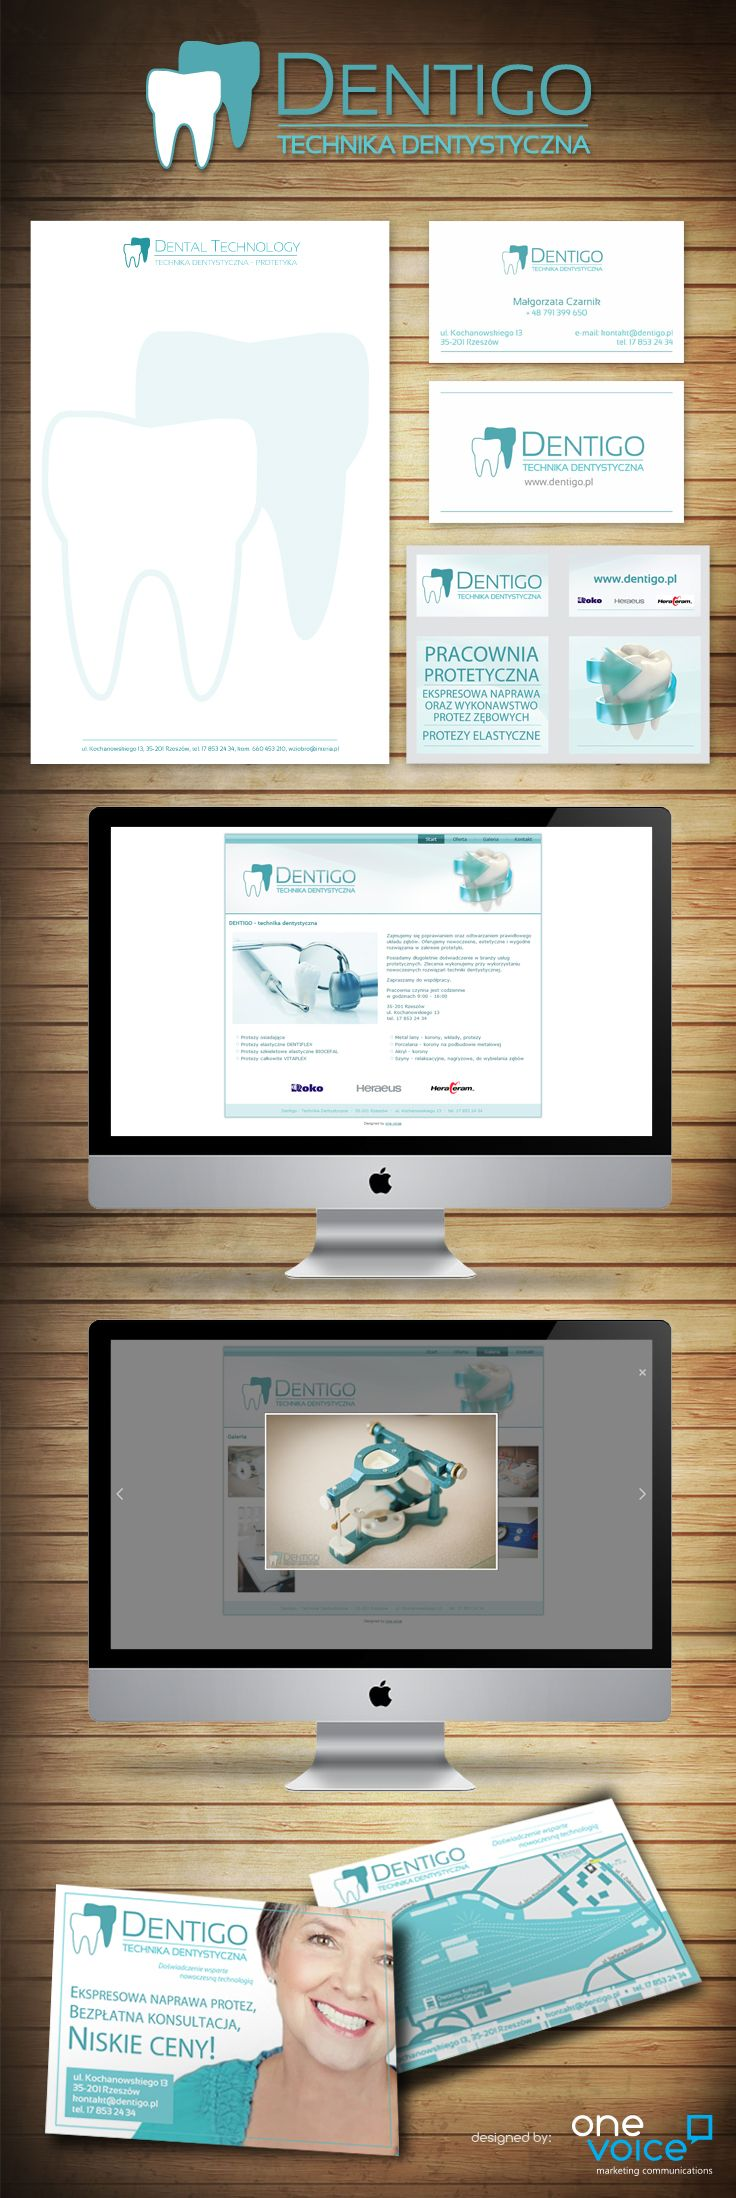 Dentigo. Logo, promotional materials and web design